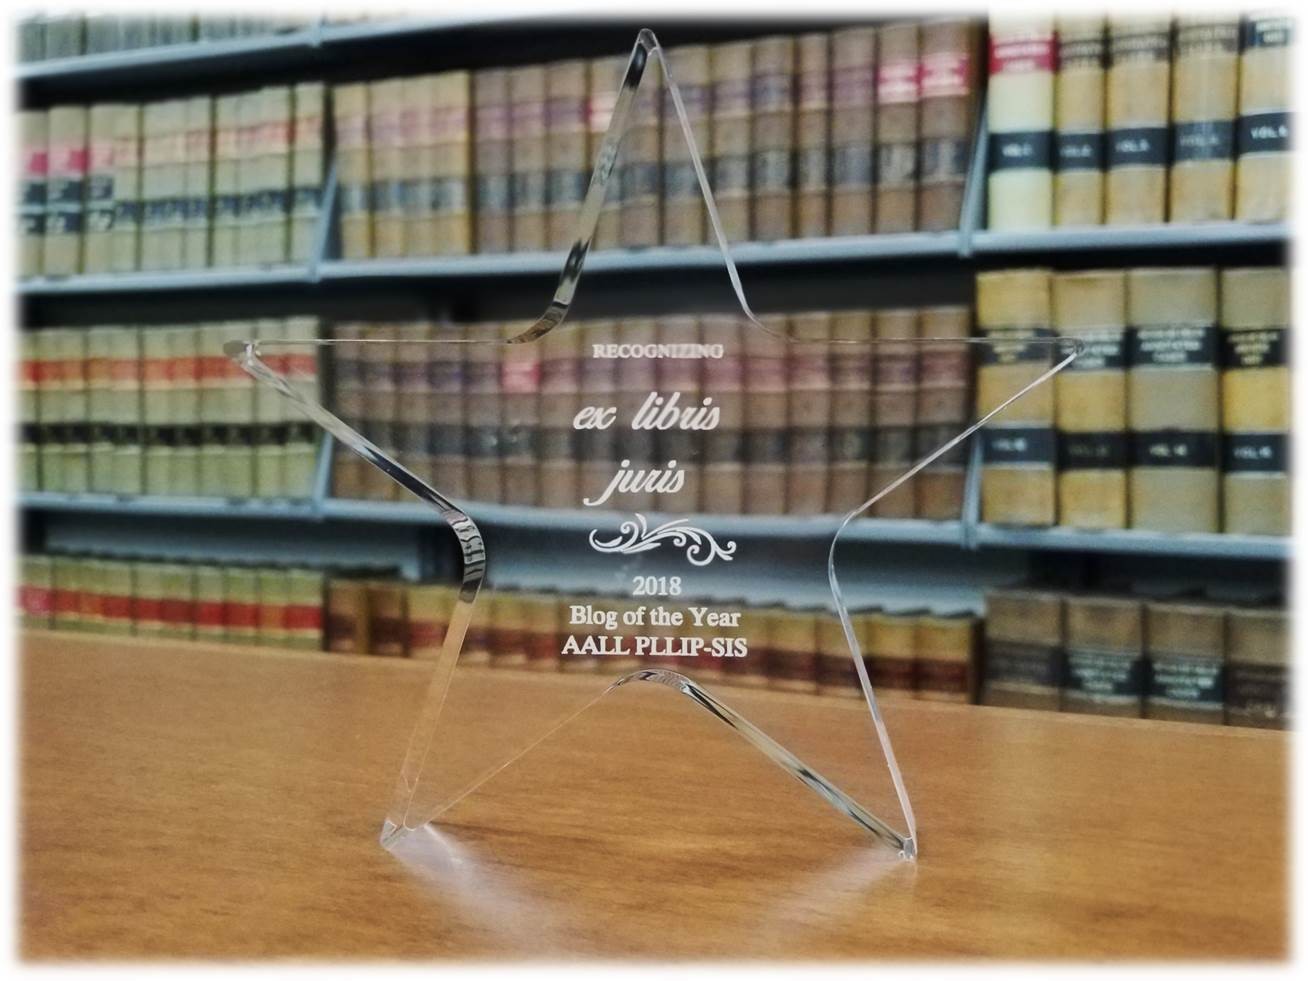 "Acrylic star in front of bookcase inscribed, ""Recognizing ex libris juris, 2018 Blog of the Year AALL PLLIP-SIS"